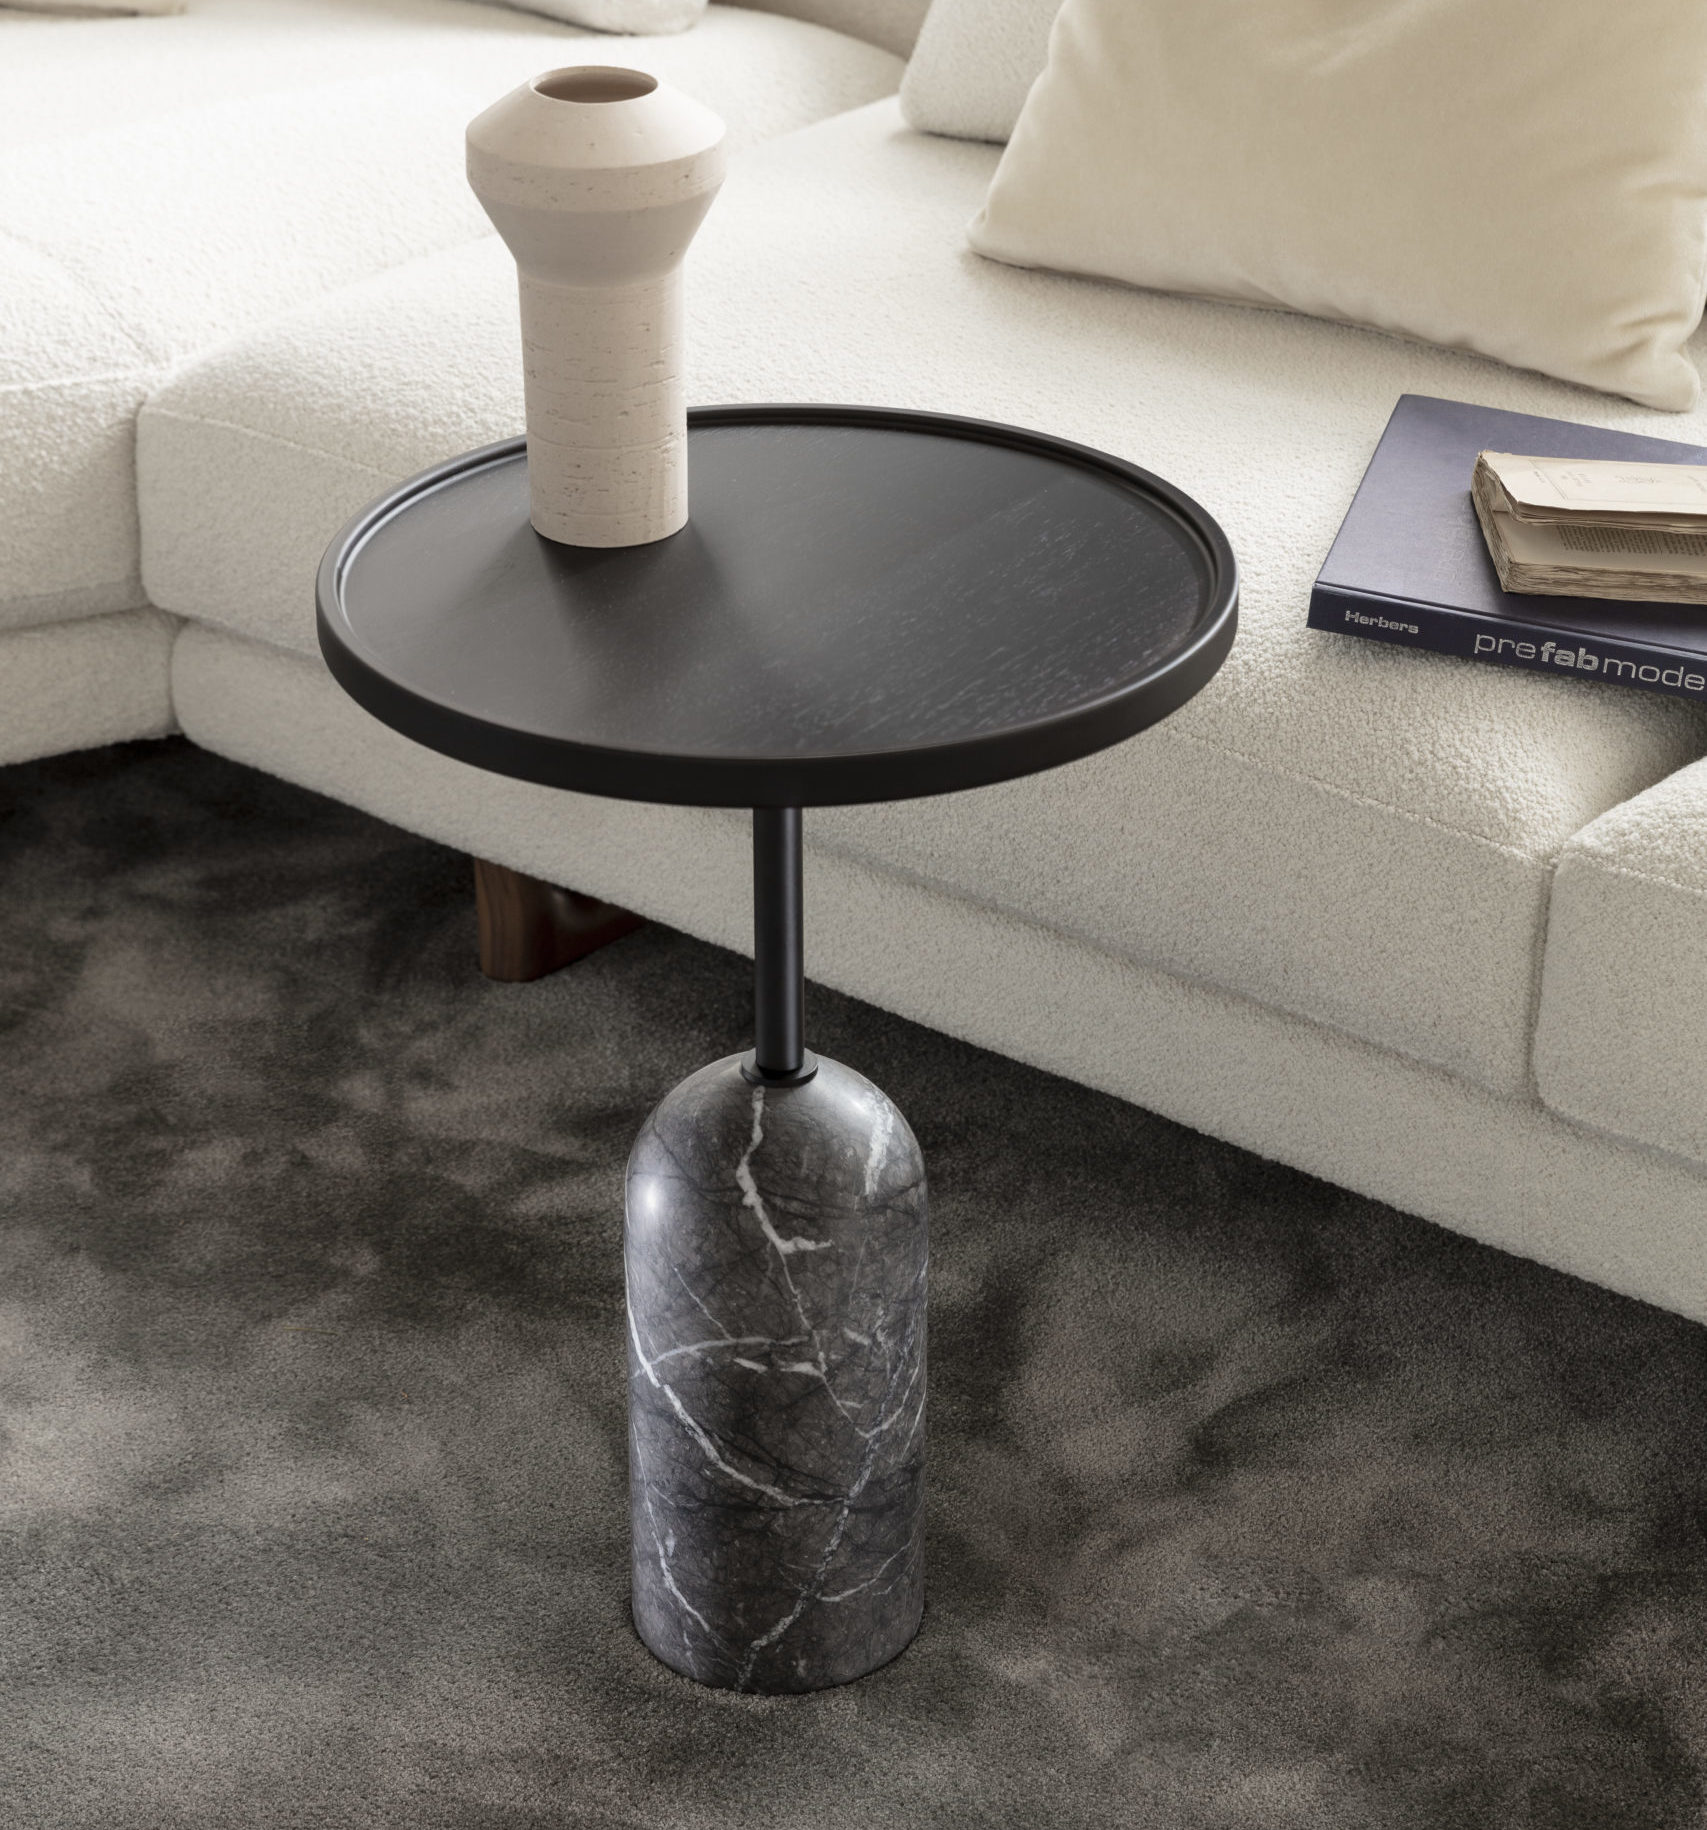 Ekero round side table by Porada with grey carnico base and black wooden top - white background